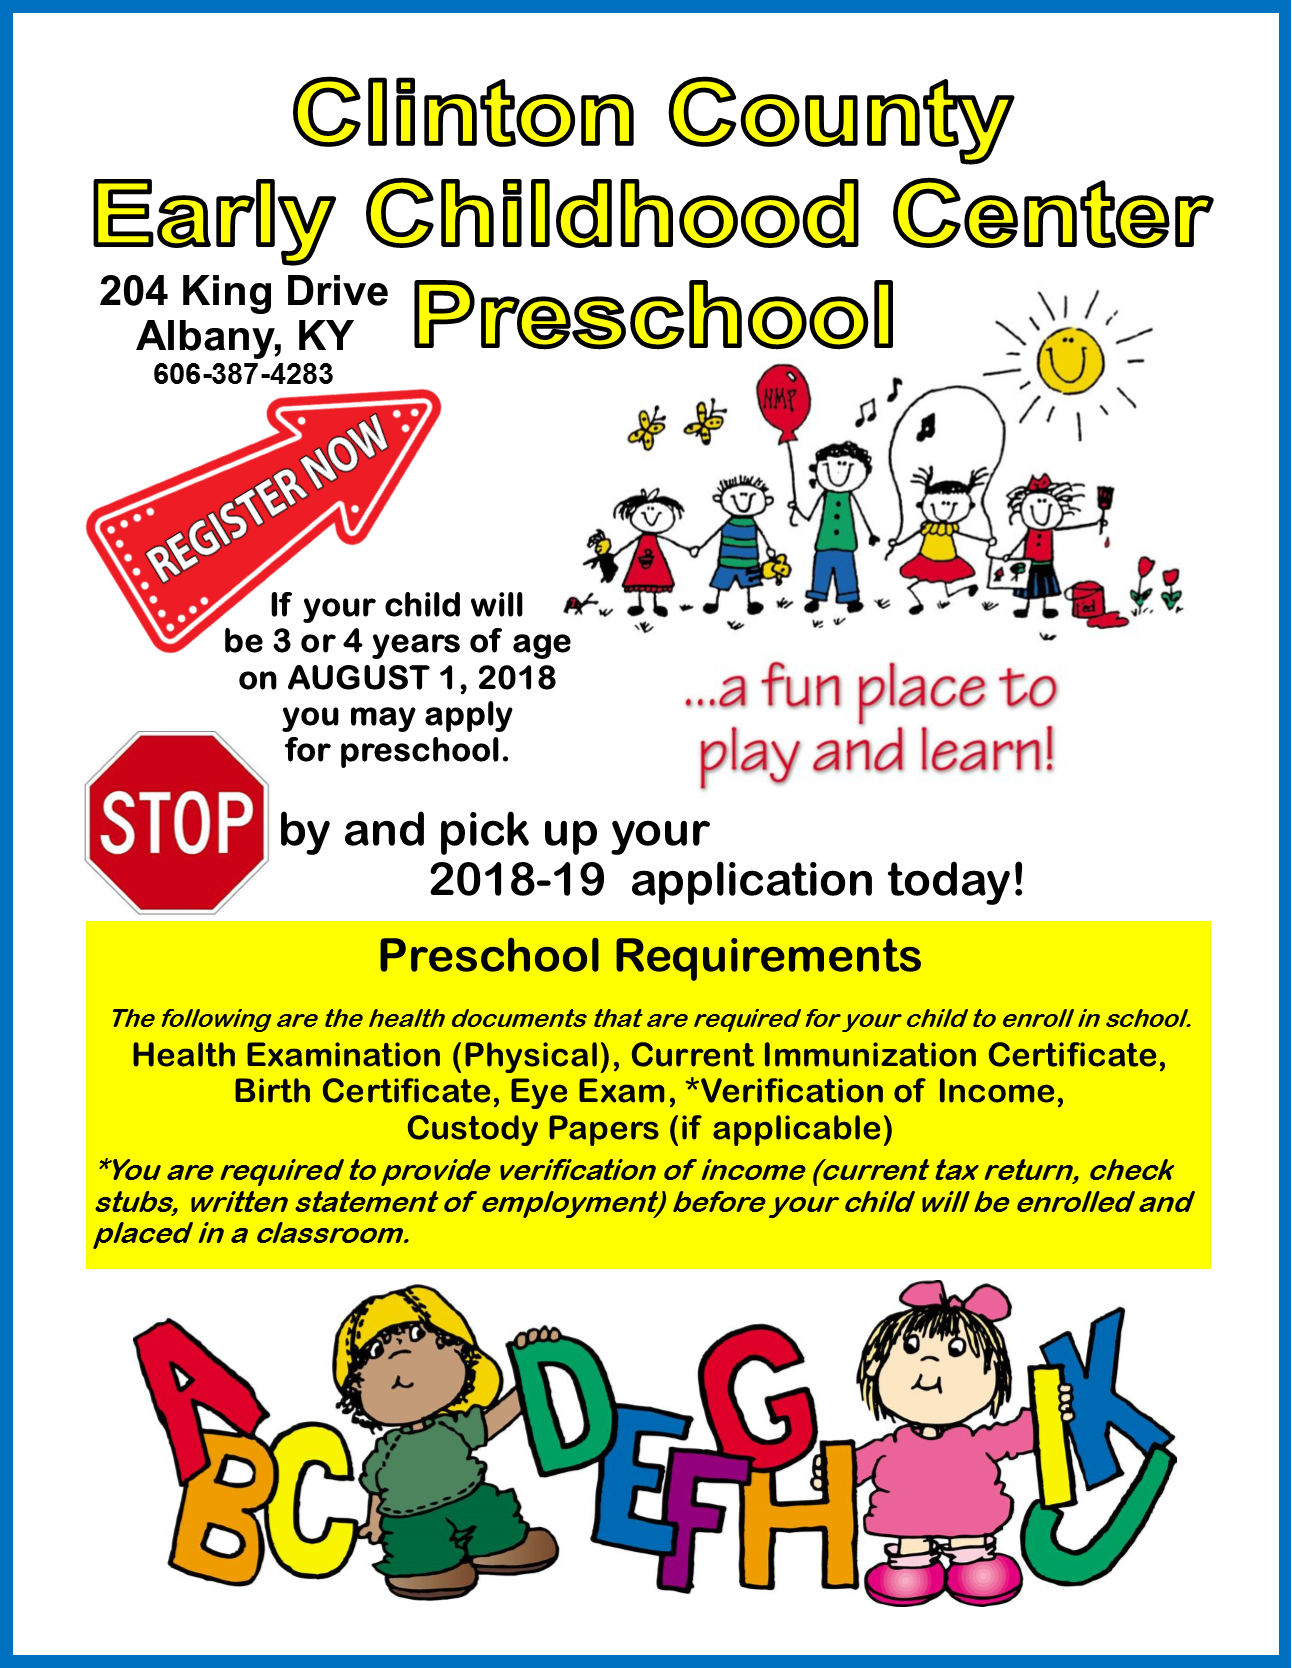 Register now for Preschool!